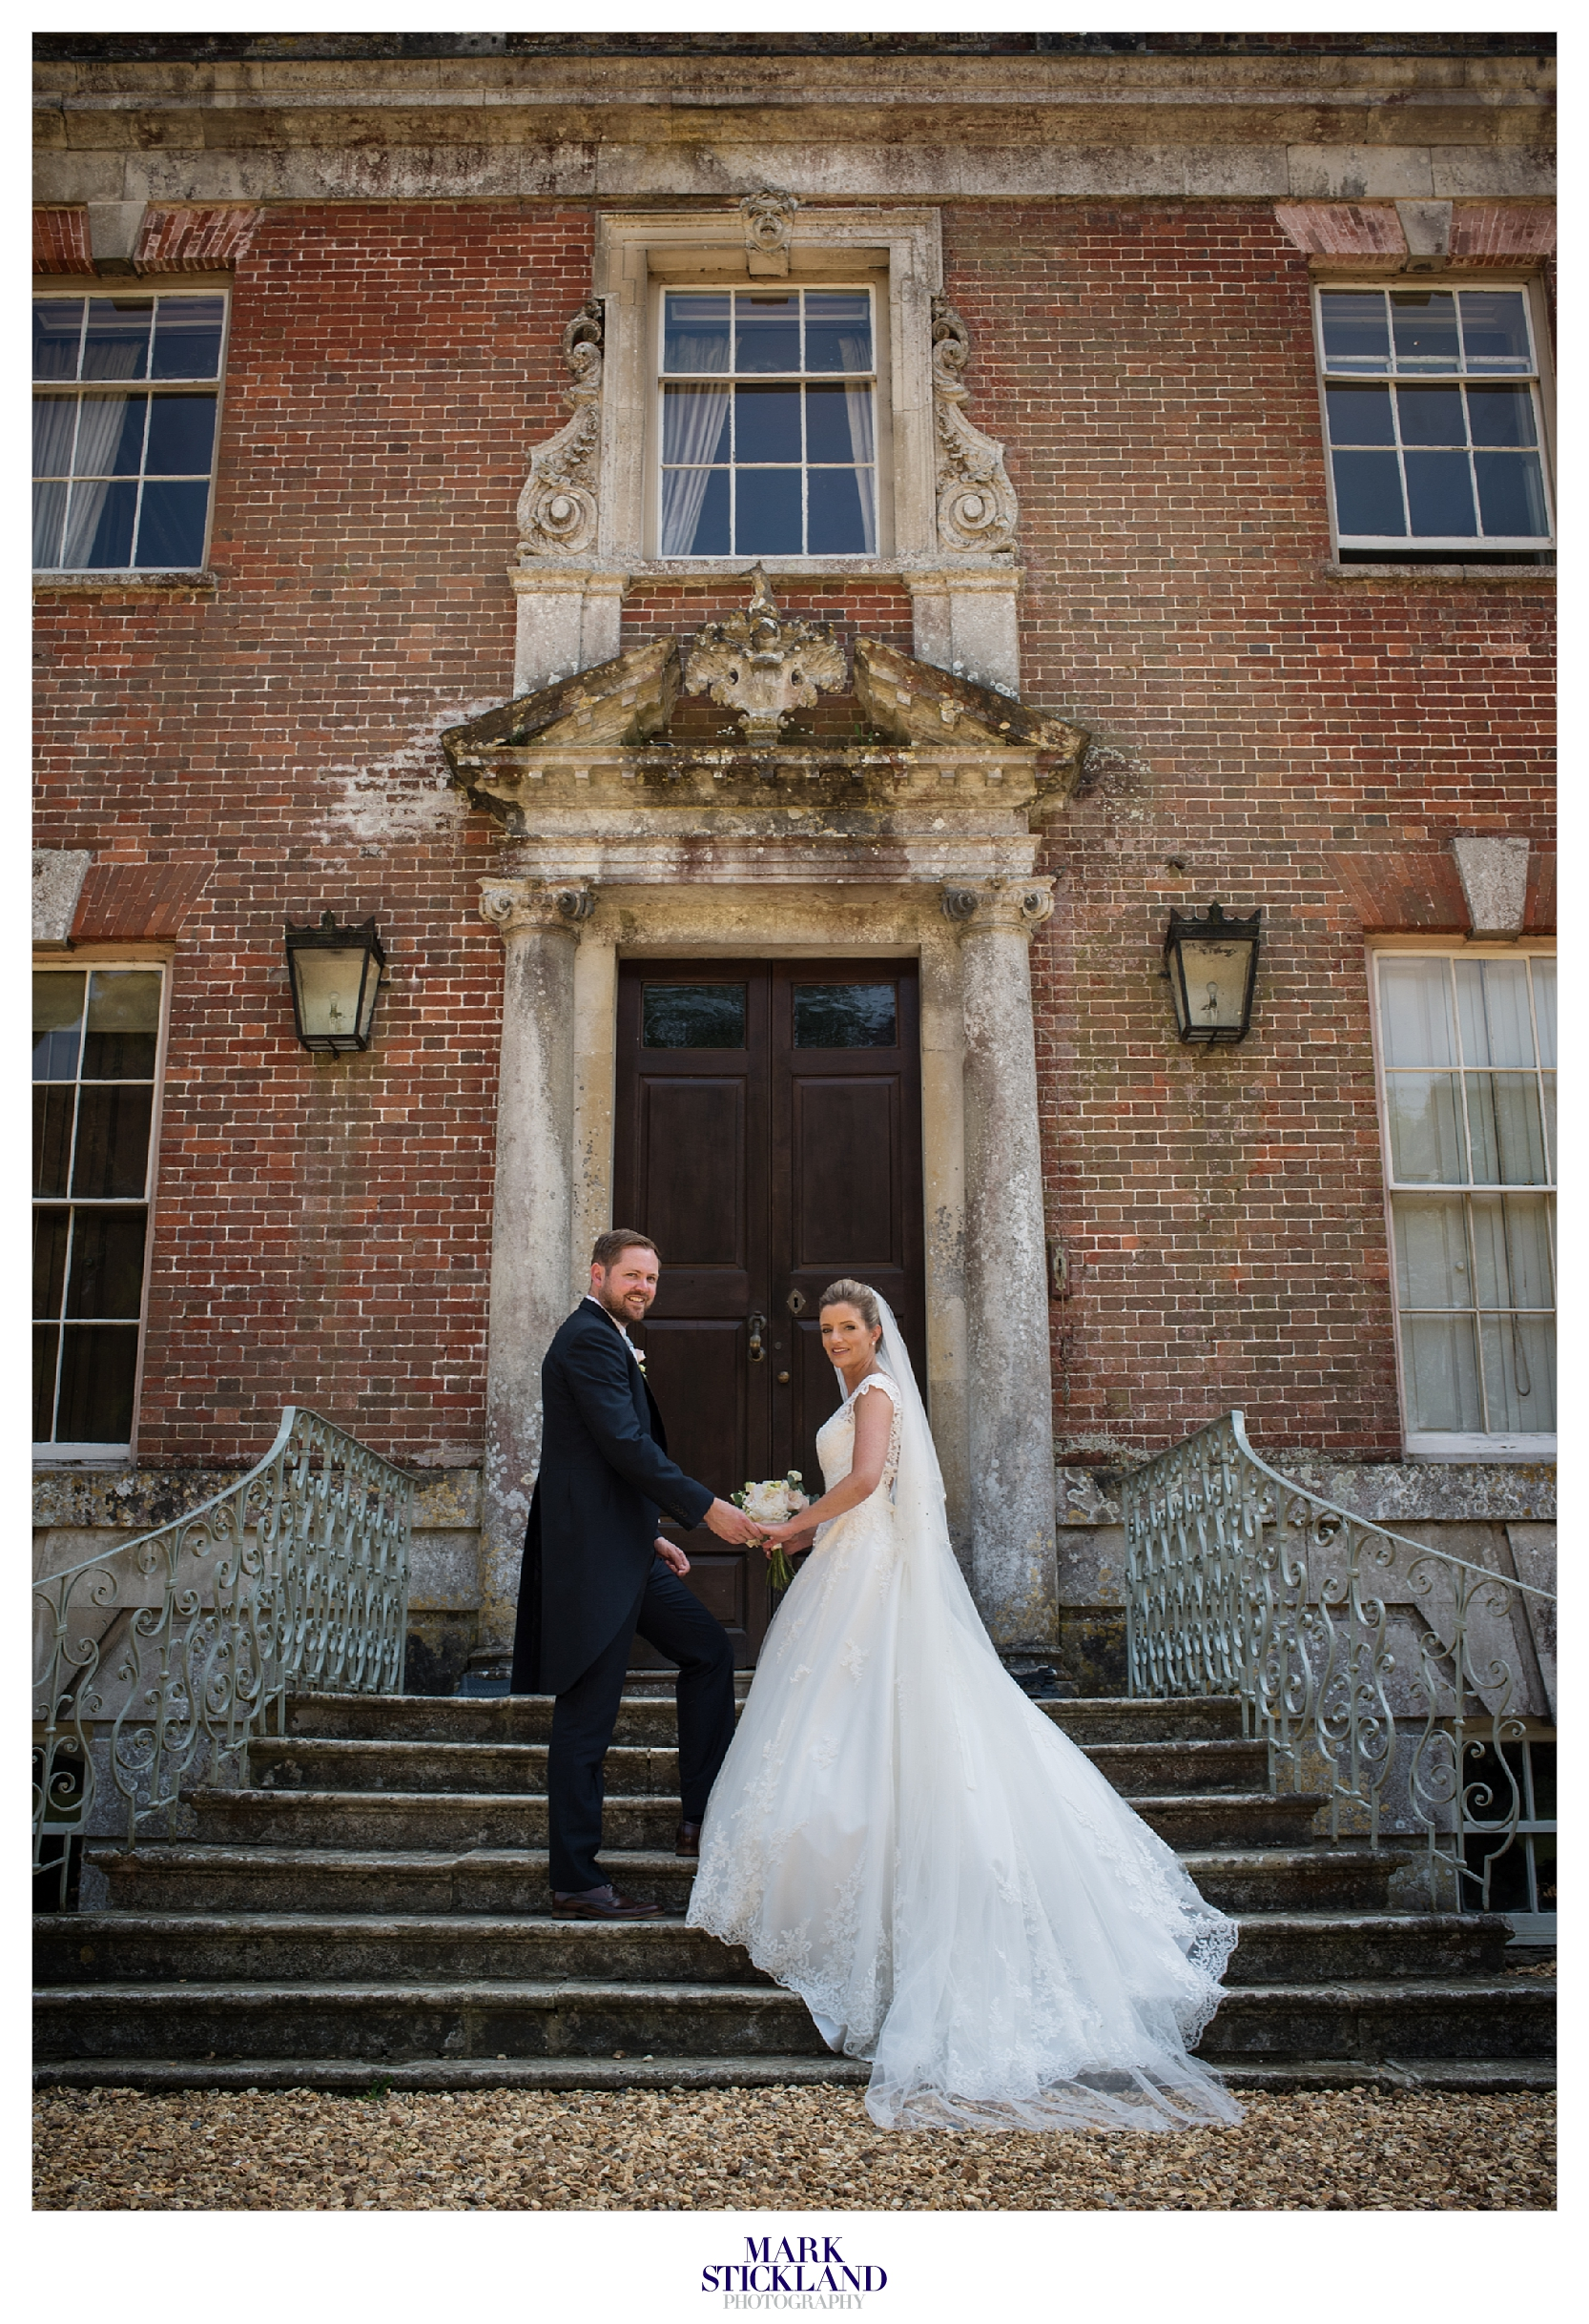 023.deans_court_wedding_wimborne_dorset